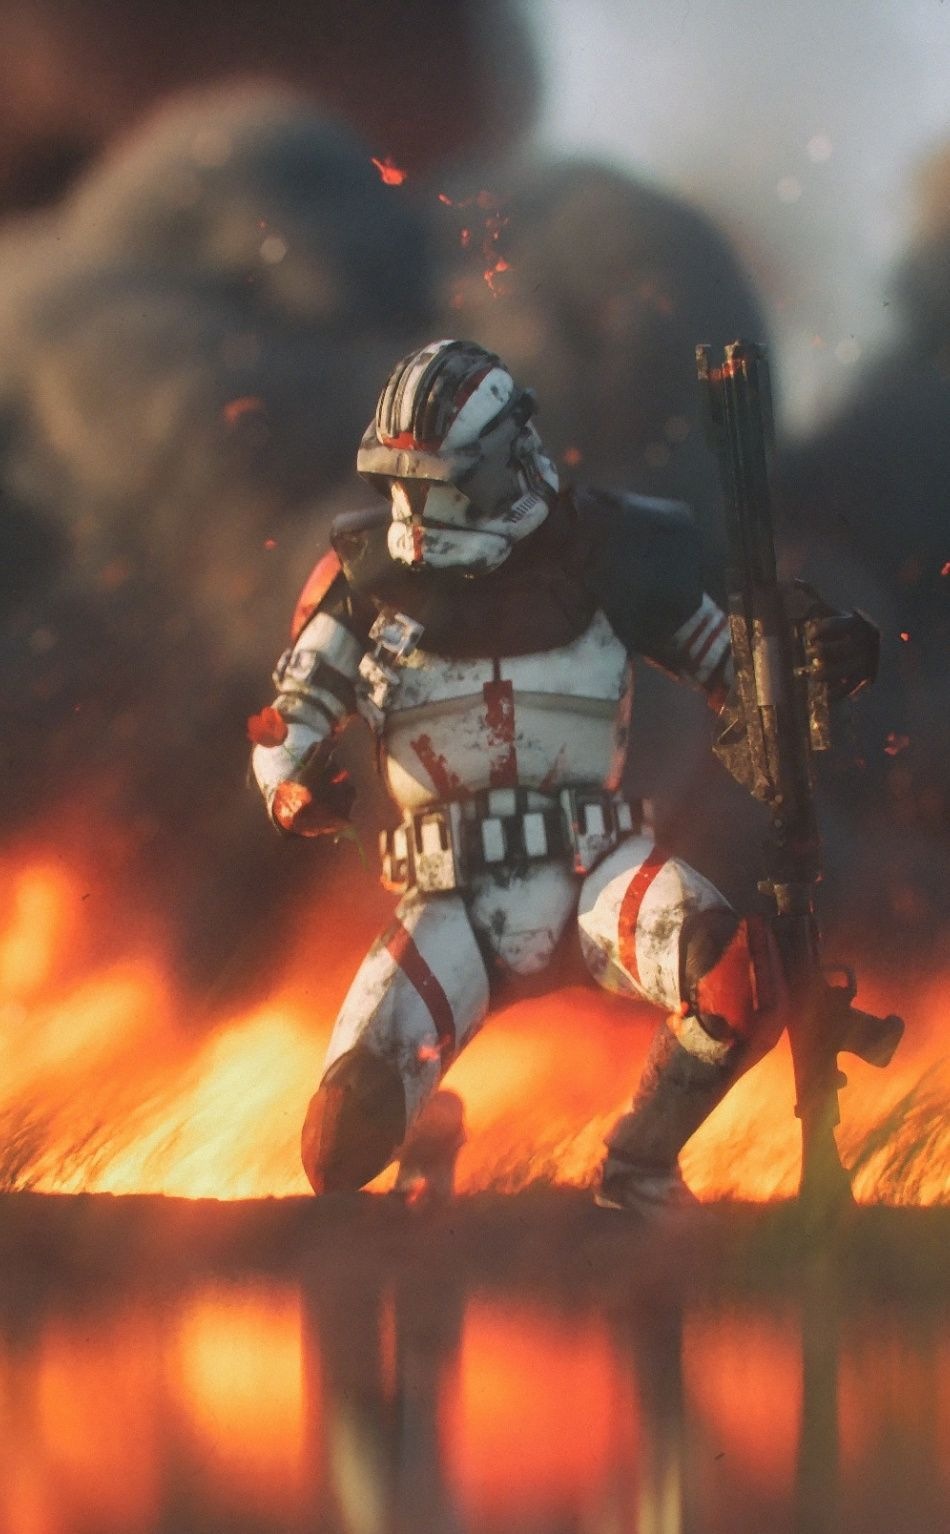 Clone Trooper Star Wars Fire 950x1534 Wallpaper Star Wars